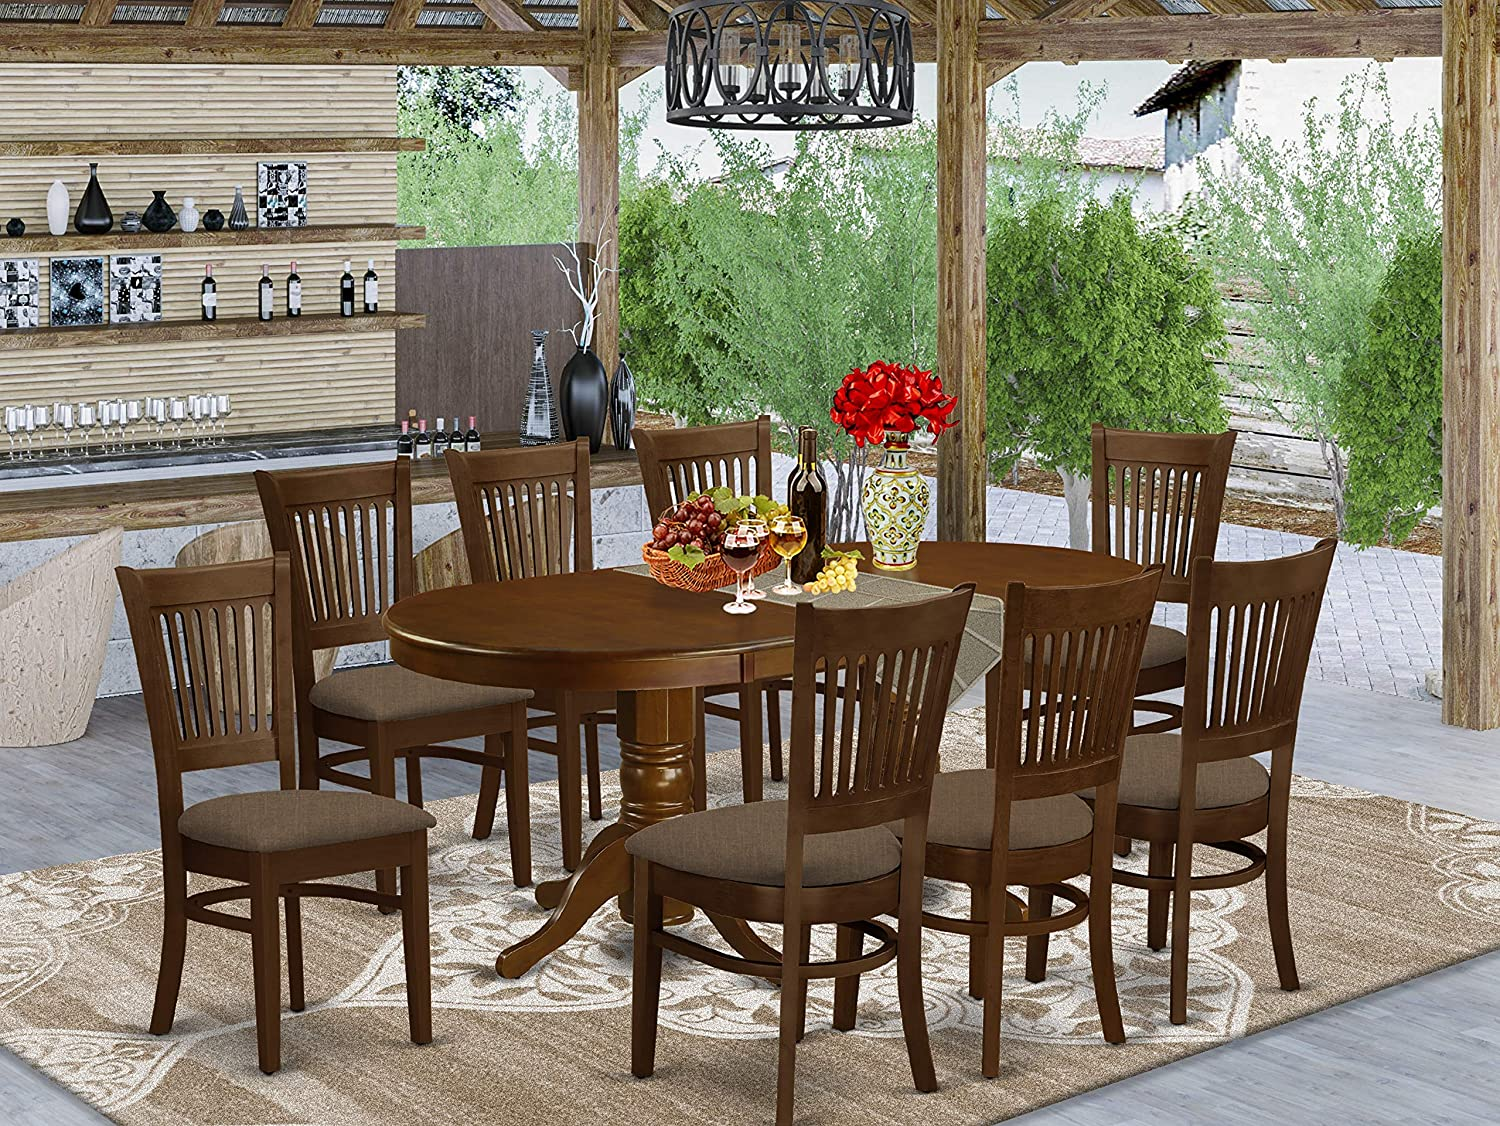 Amazon Com 9 Pc Dining Room Set For 8 Dining Table With Leaf And 8 Dining Chairs Table Chair Sets